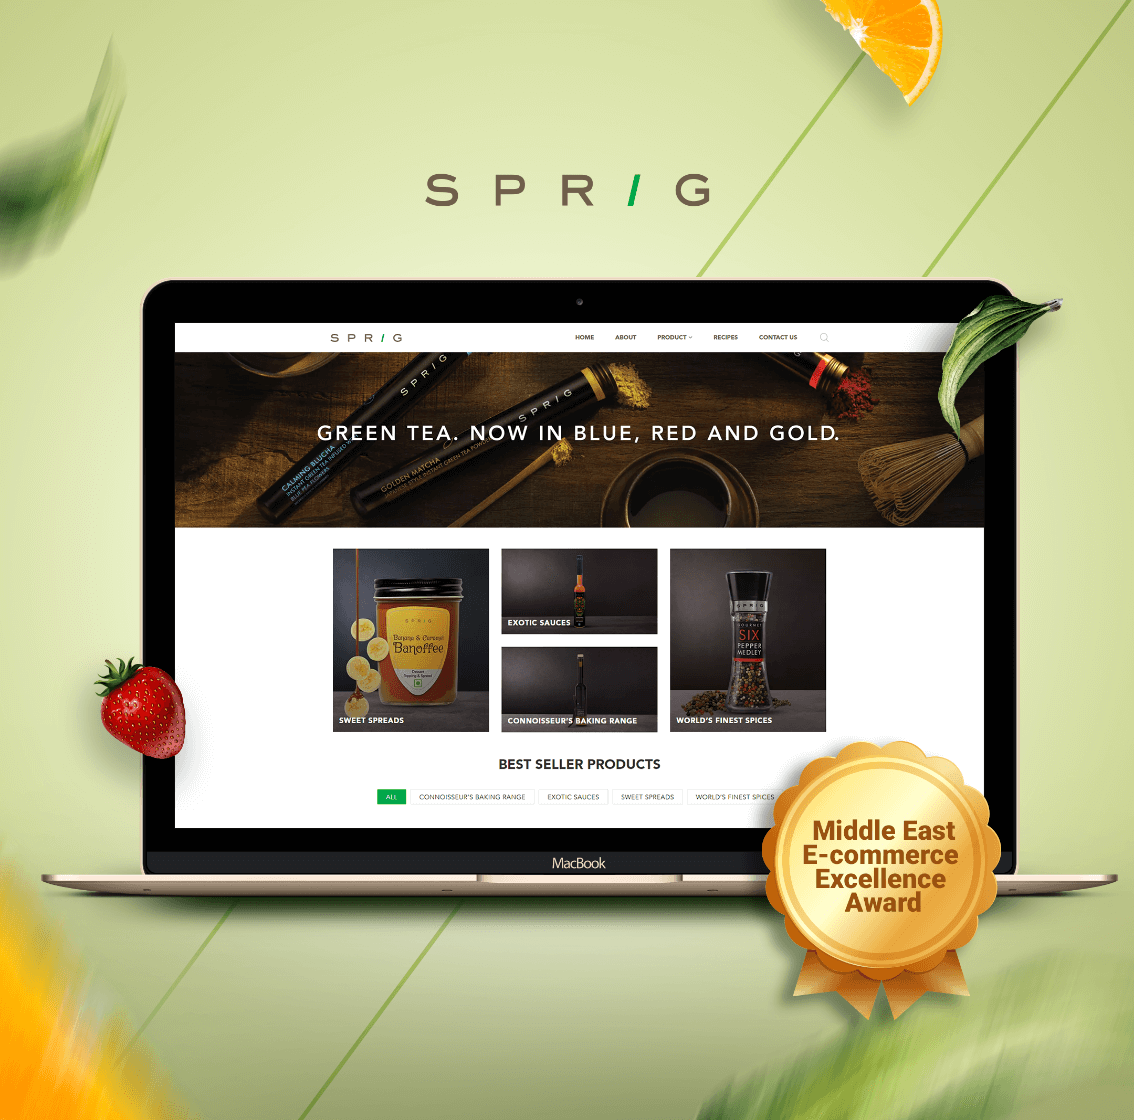 Ecommerce development of sprig